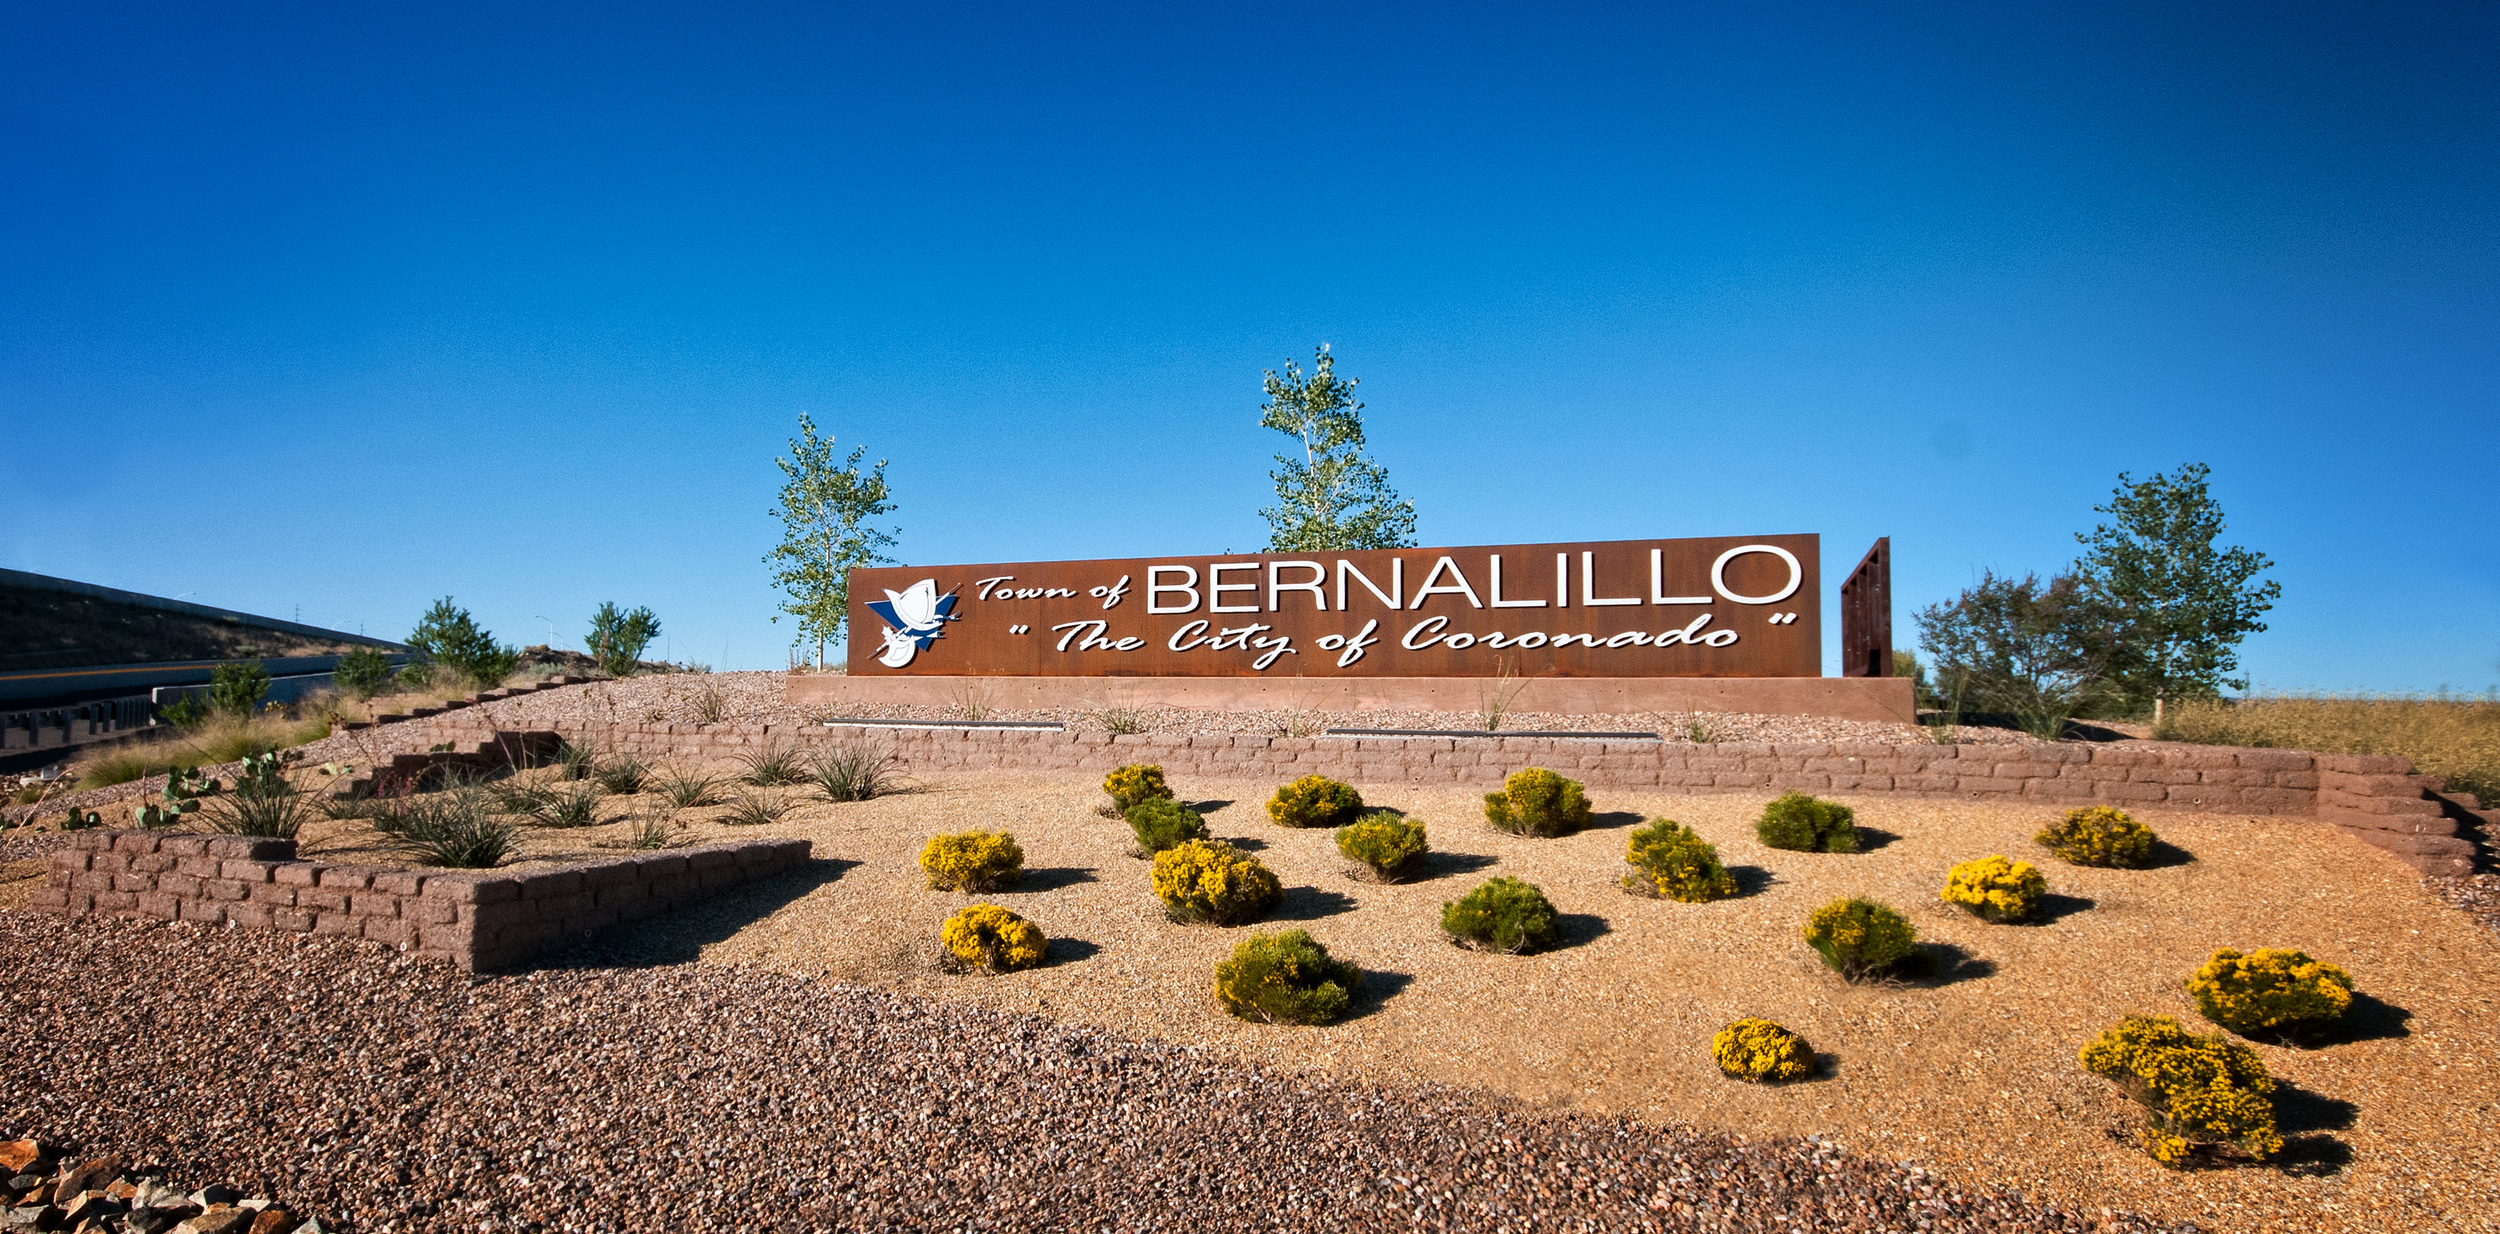 Welcome to Bernalillo signage at highway interchange